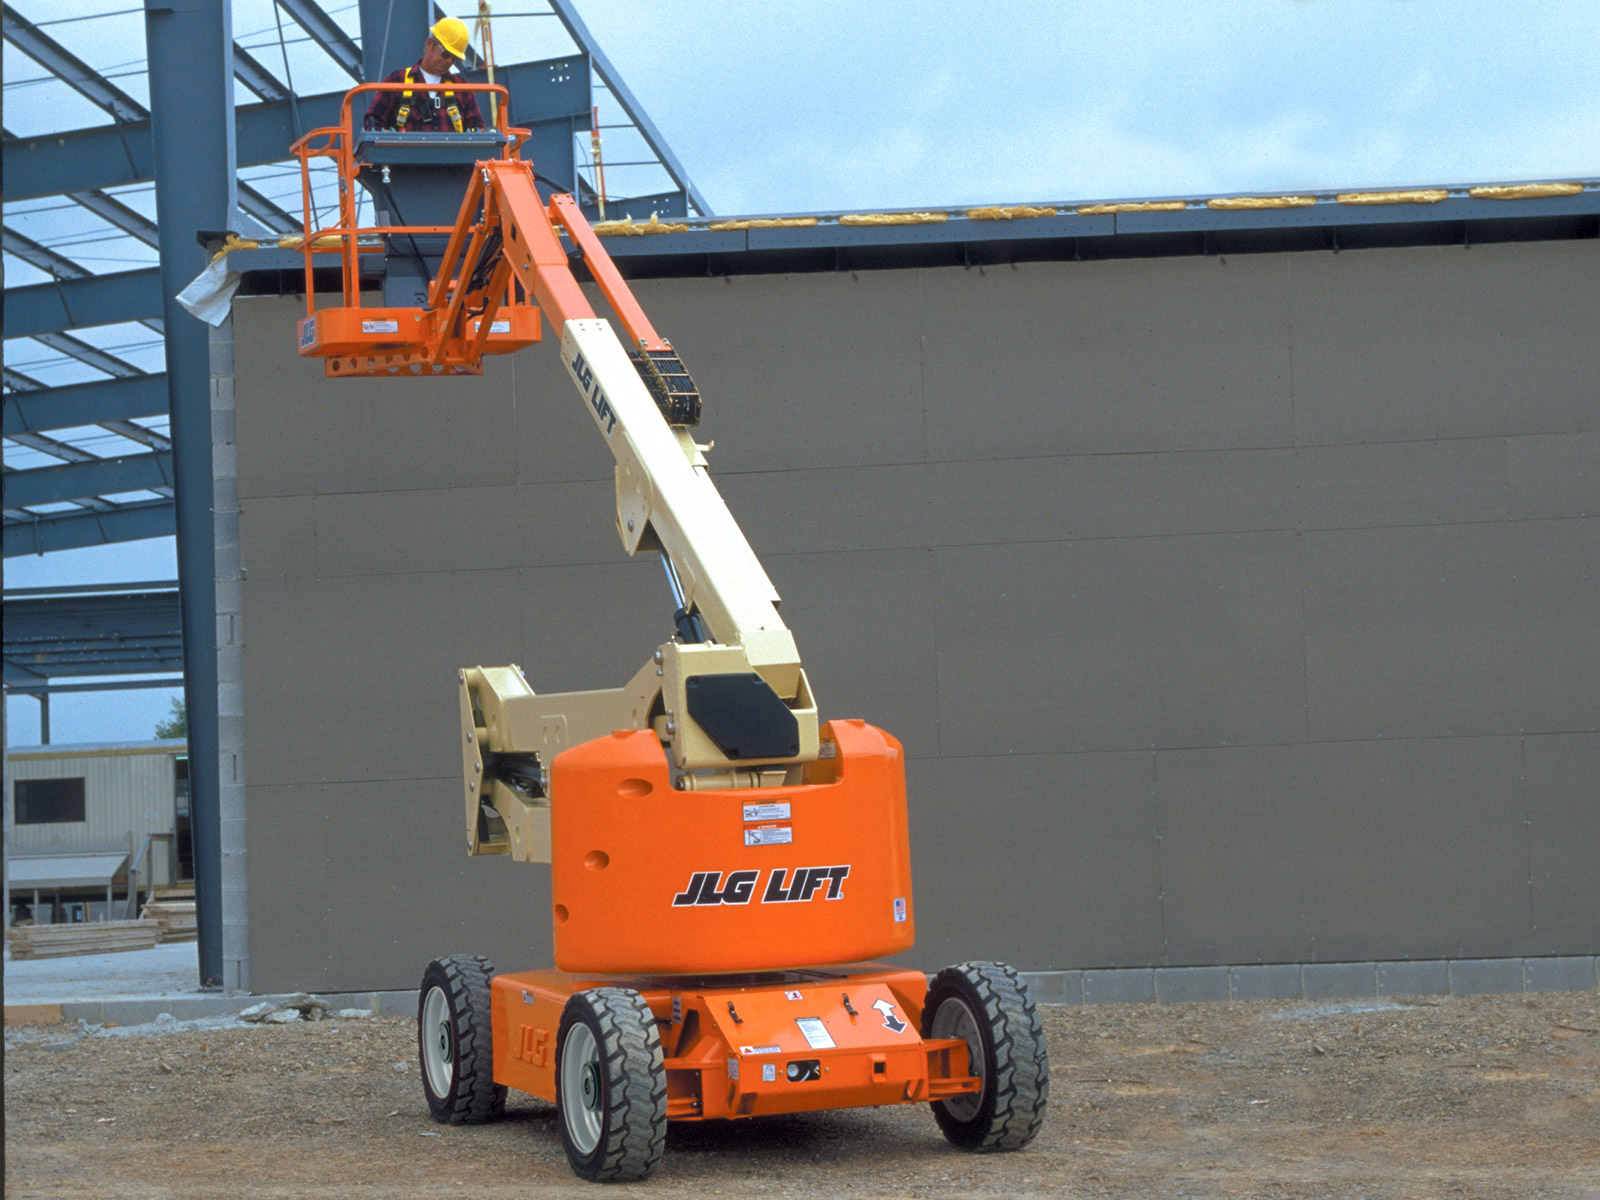 hight resolution of wiring diagram for jlg scissor lift 1532 wiring diagramwiring diagram for jlg scissor lift 1532 wiring